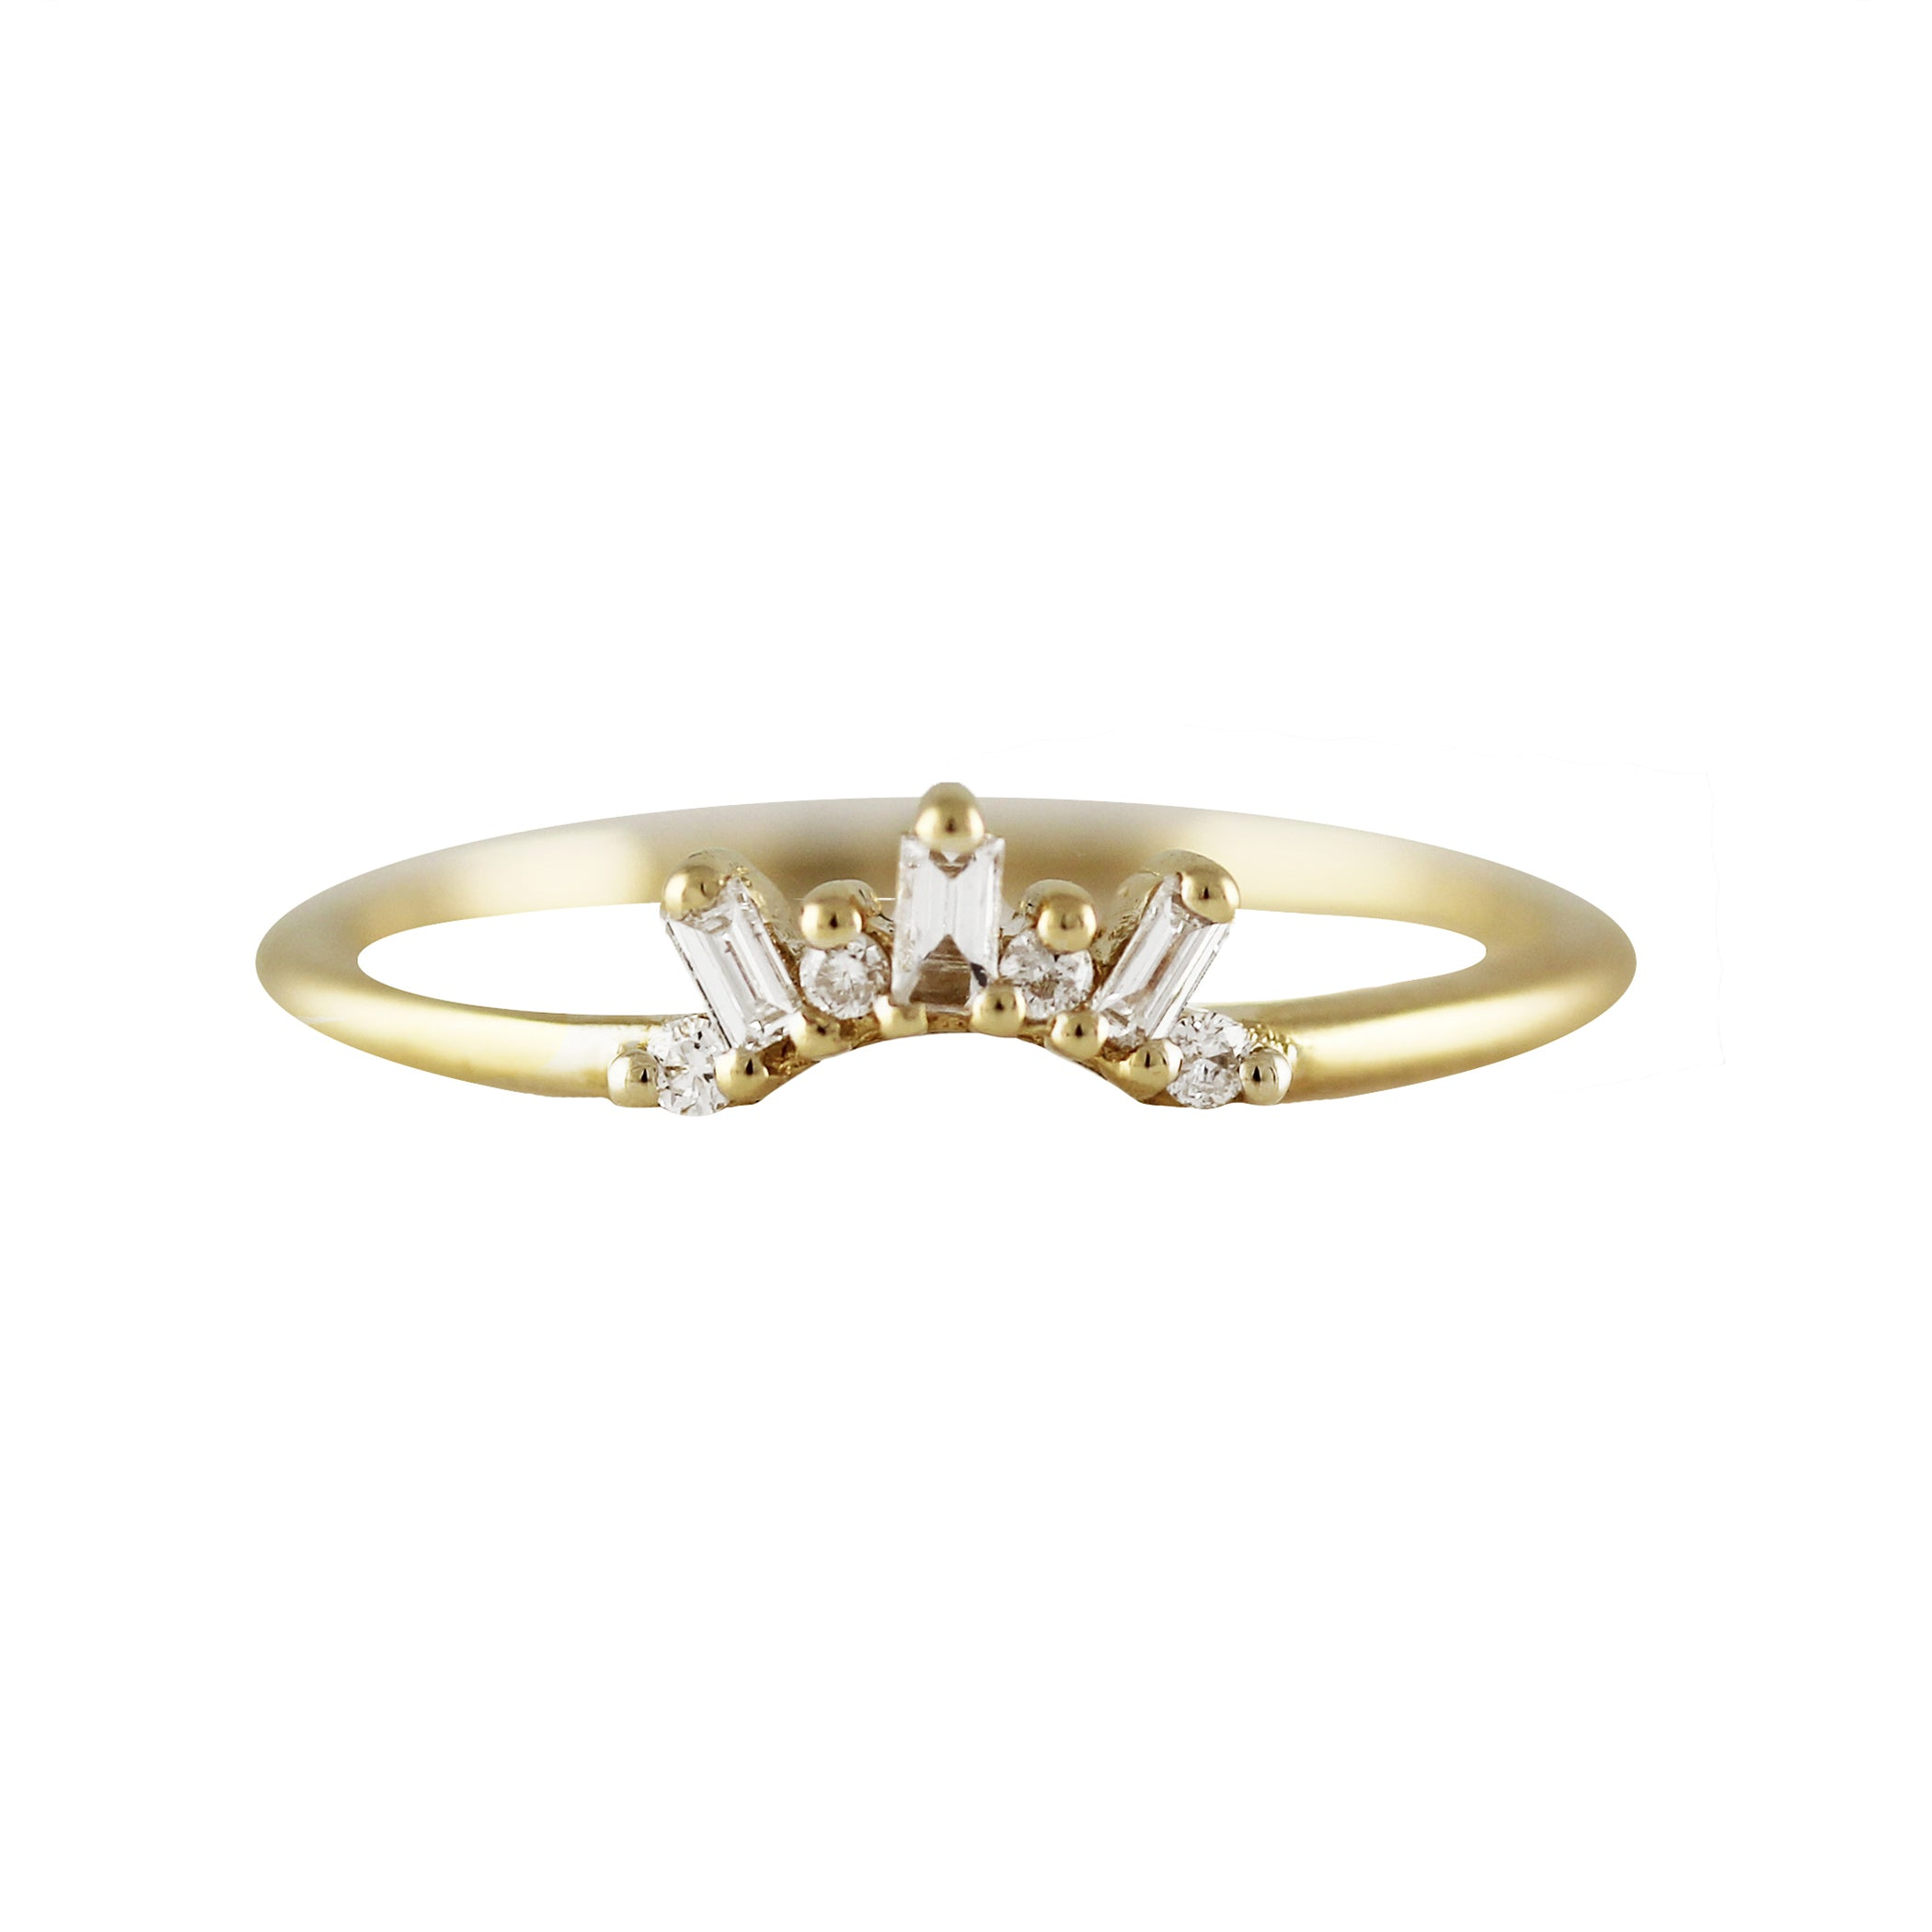 14K TINY BAGUETTE AND ROUND DIAMONDS TIARA RING